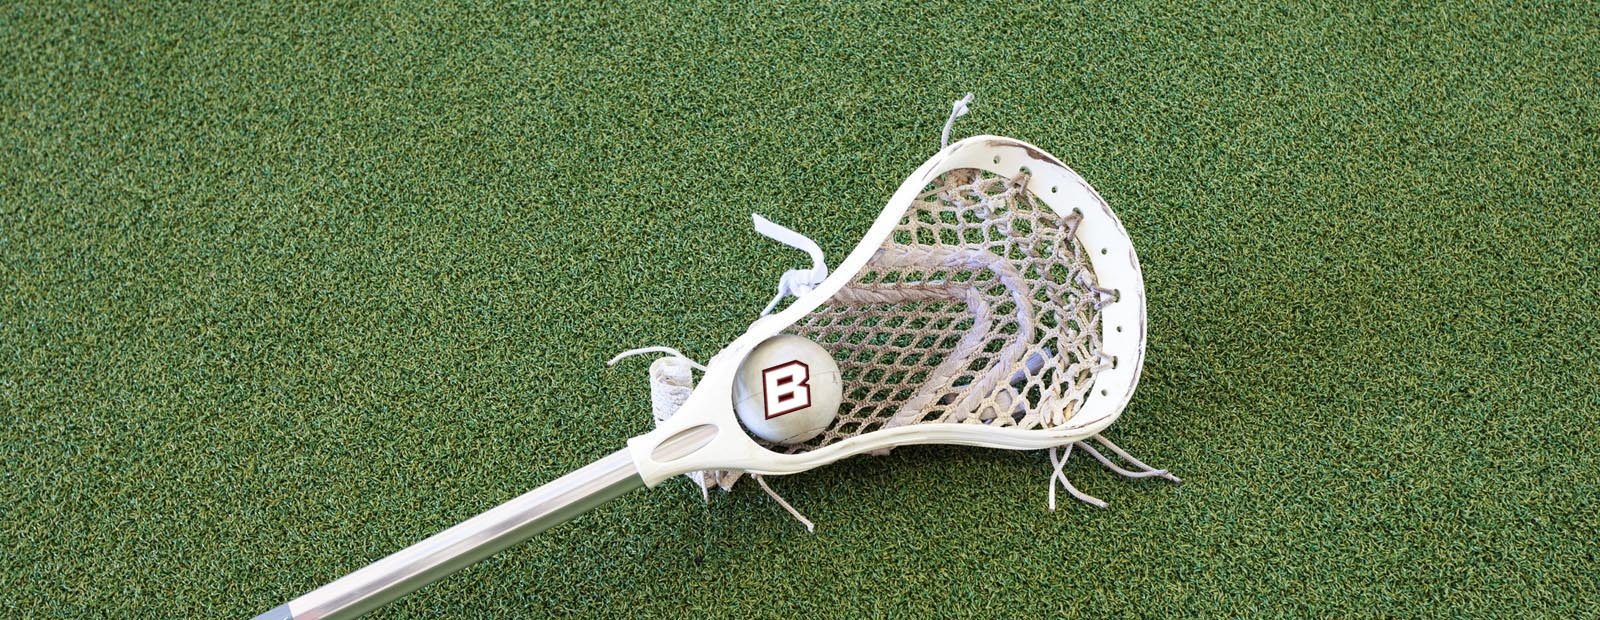 Lacrosse stick with ball laying on grass